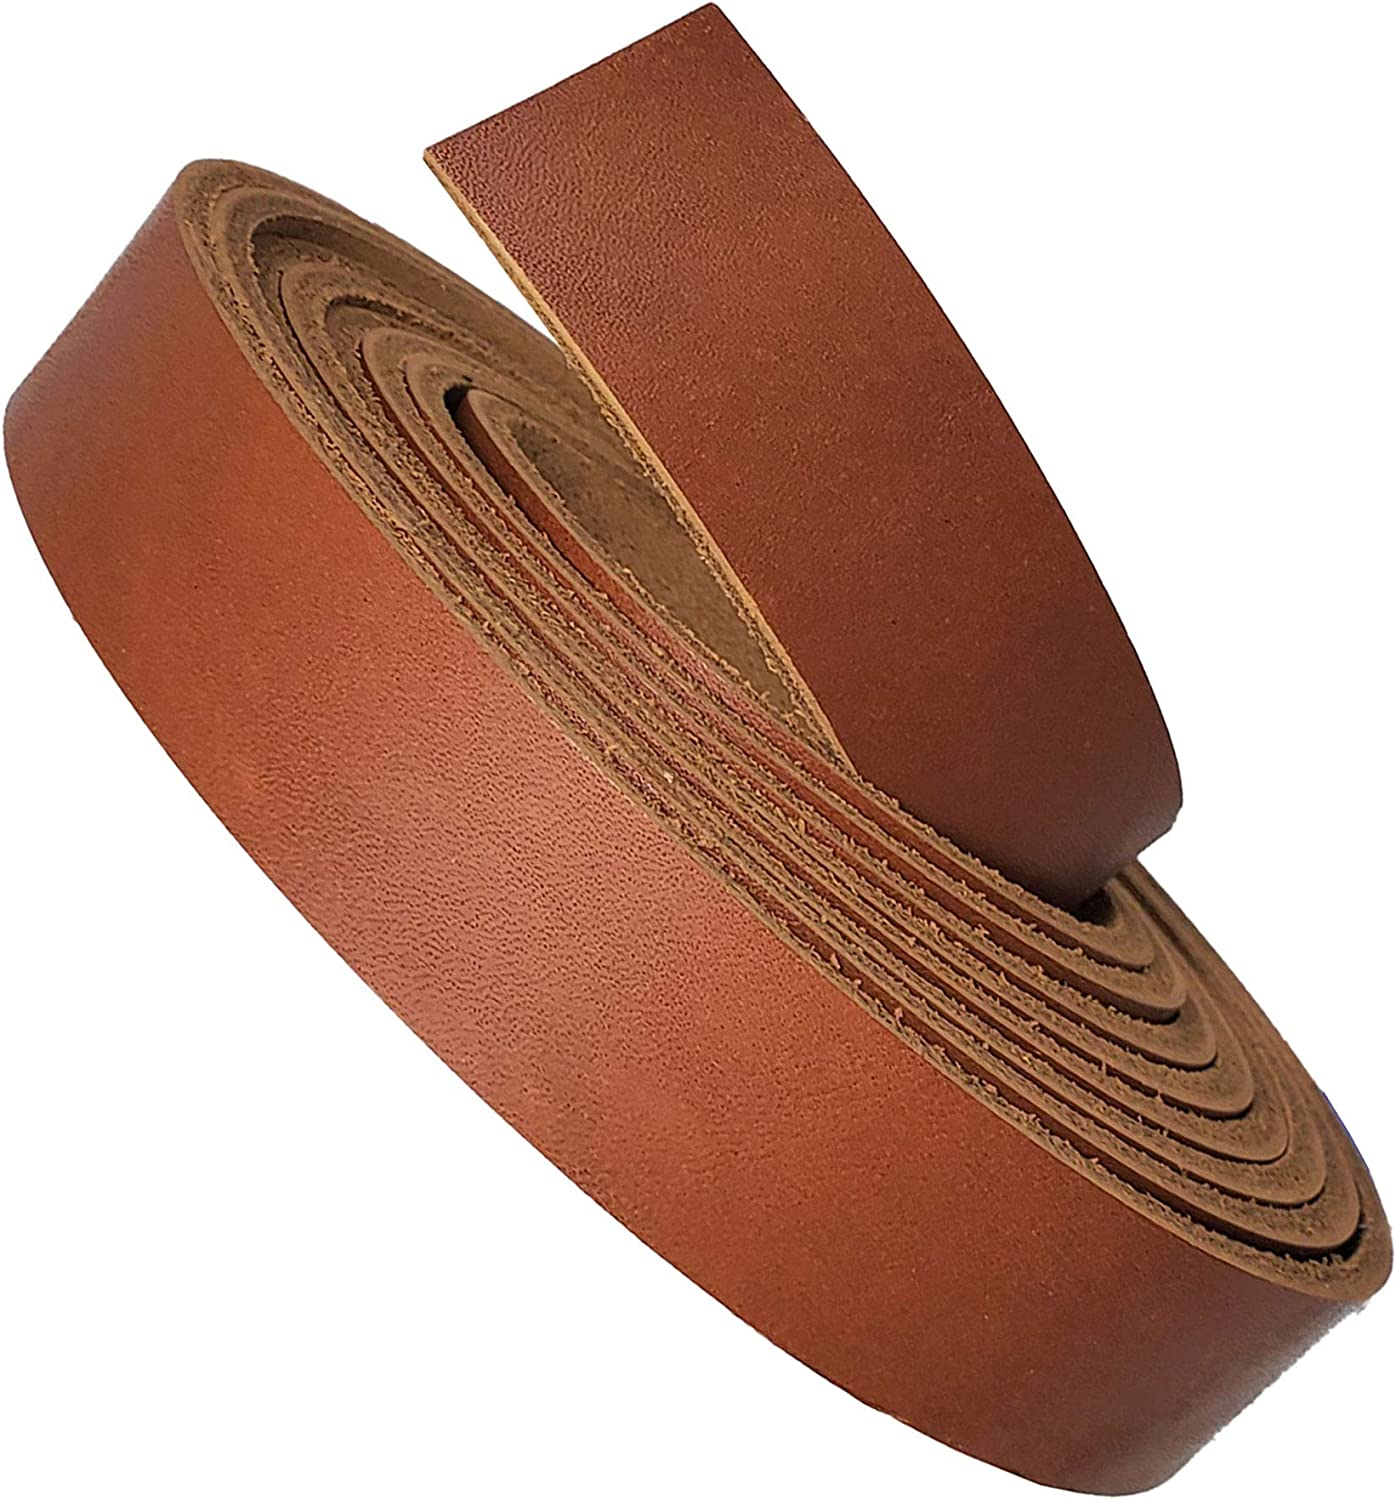 Pitka Leather Leather Lace Latigo Leather Craft Projects Choose Your Color Length Strong Quality USA Made Leather Laces Width